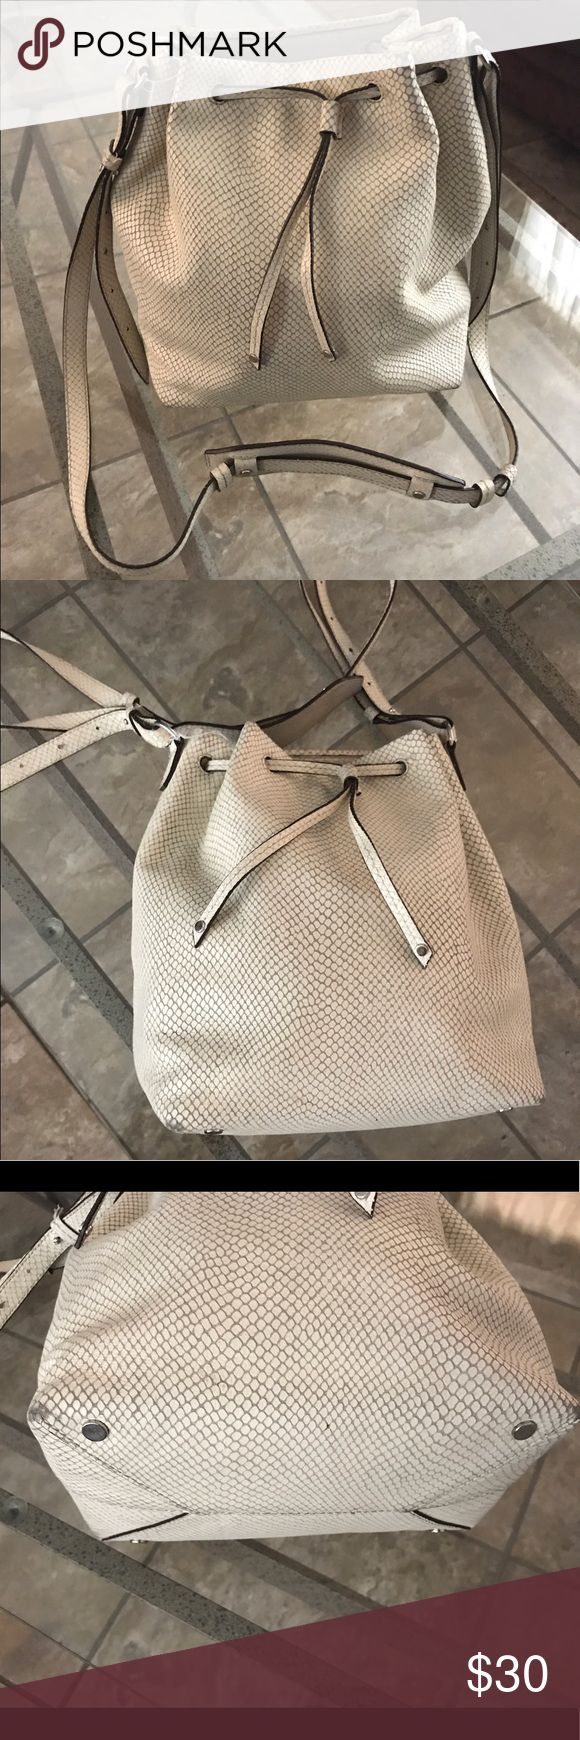 Banana Republic bucket purse Used Banana Republic bucket creme faux snake skin. Has  flaws on the bottoms Corner & on top. Needs to be cleaned, but plenty of use left! Material is not cheap and durable. Banana Republic Bags Shoulder Bags